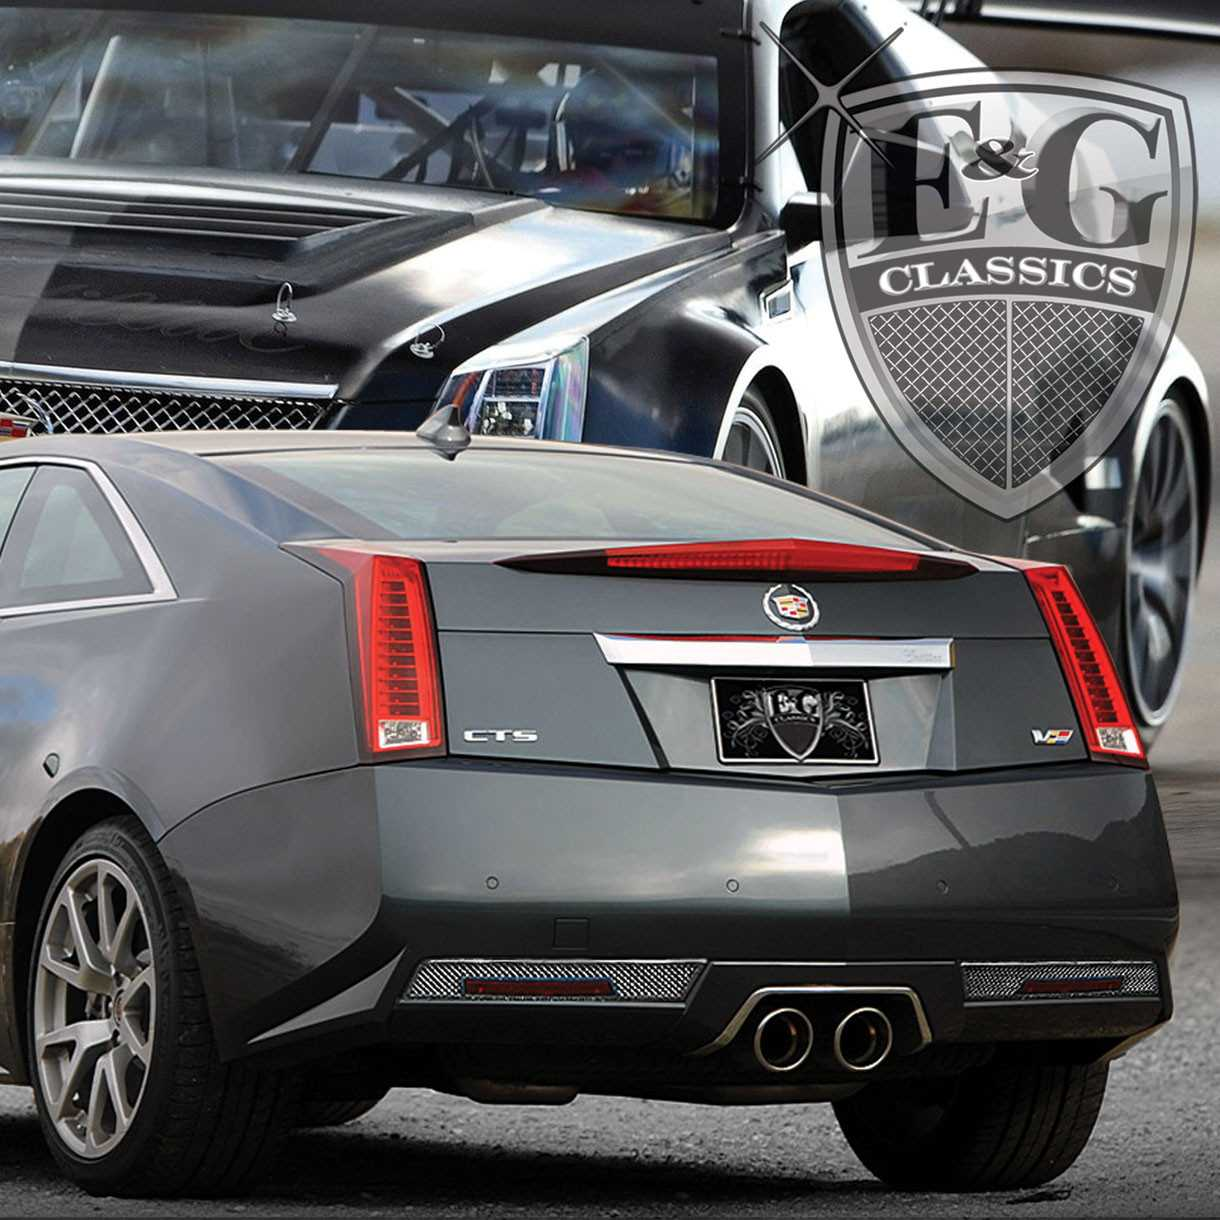 Cadillac Accessories Catalog: E&G Classics 2011-2013 Cadillac CTS Accessories Rear Accent Kits For The Cts-V Only